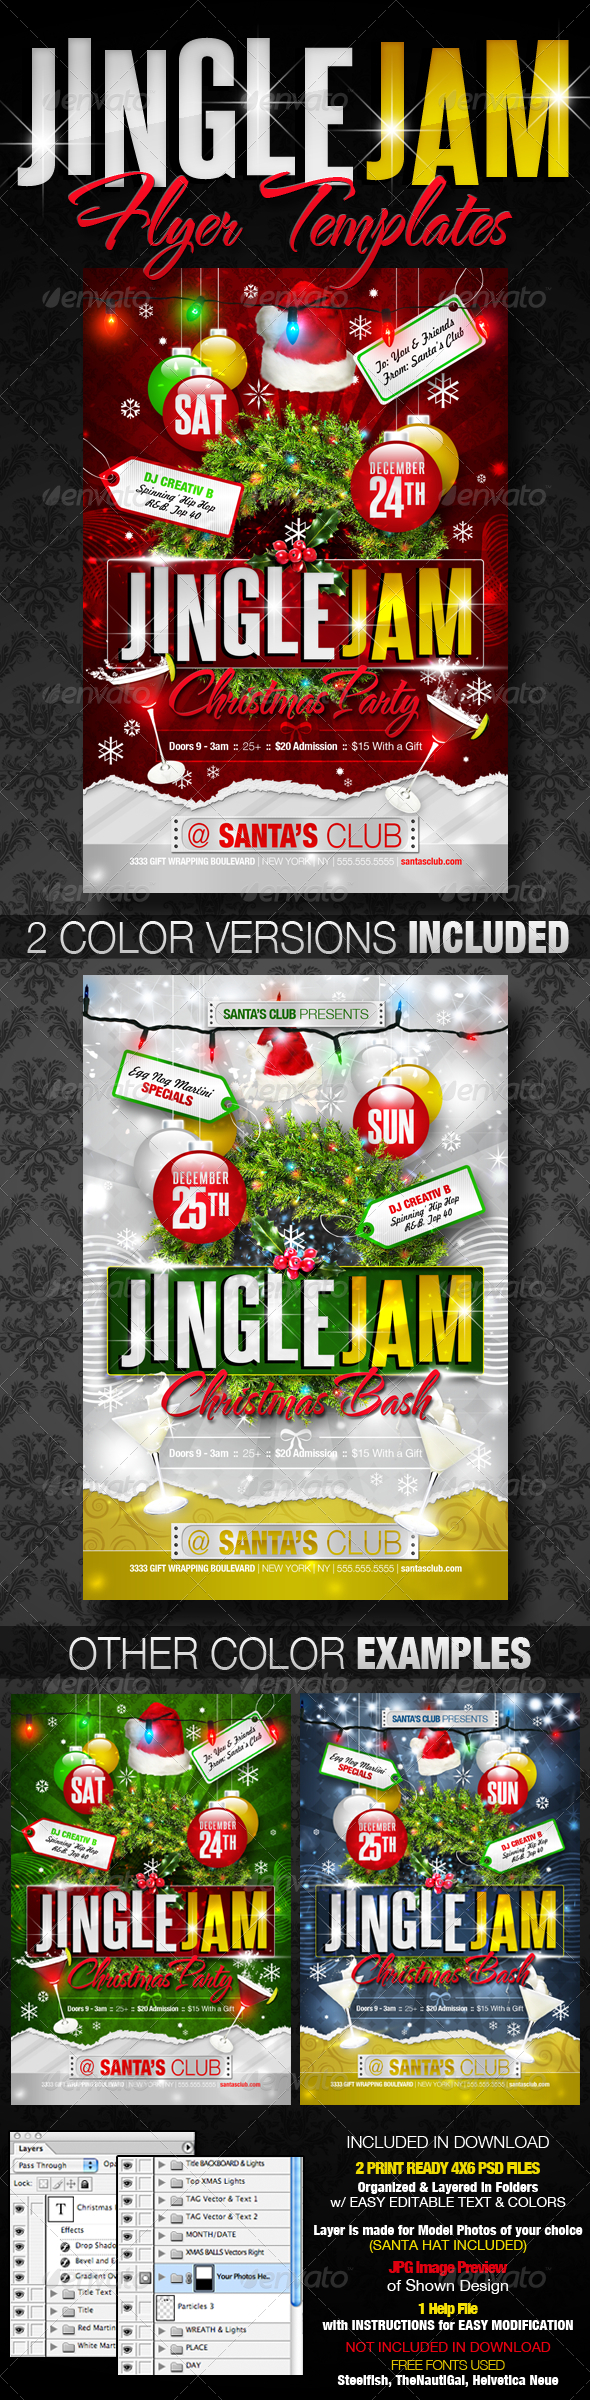 Jingle Jam Christmas Party Flyer Templates